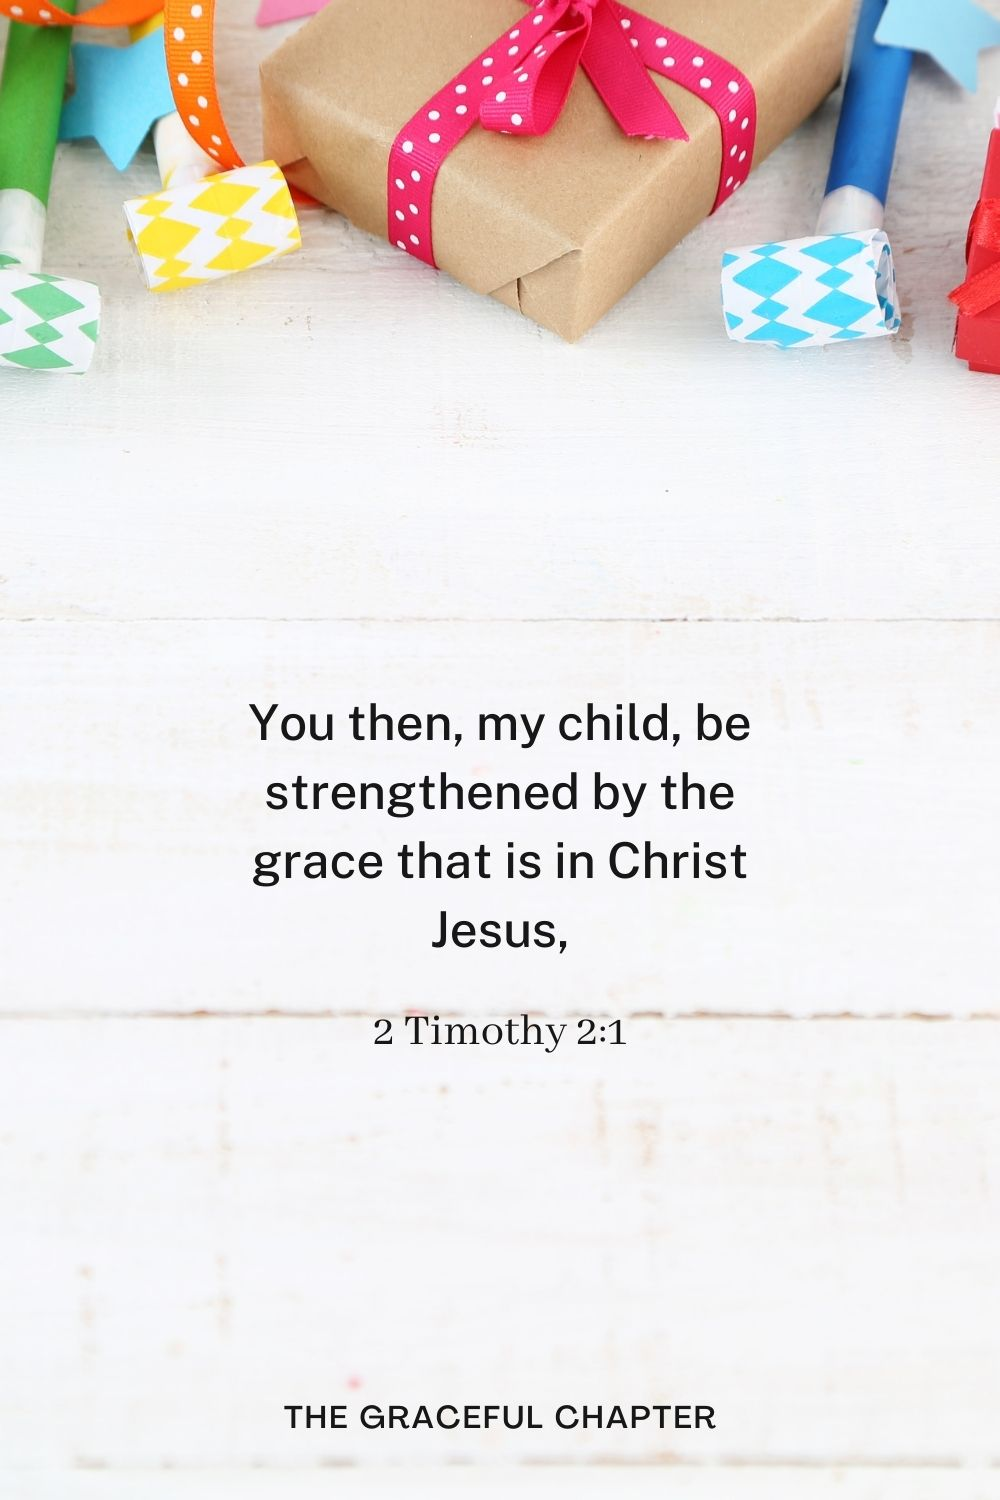 You then, my child, be strengthened by the grace that is in Christ Jesus, 2 Timothy 2:1